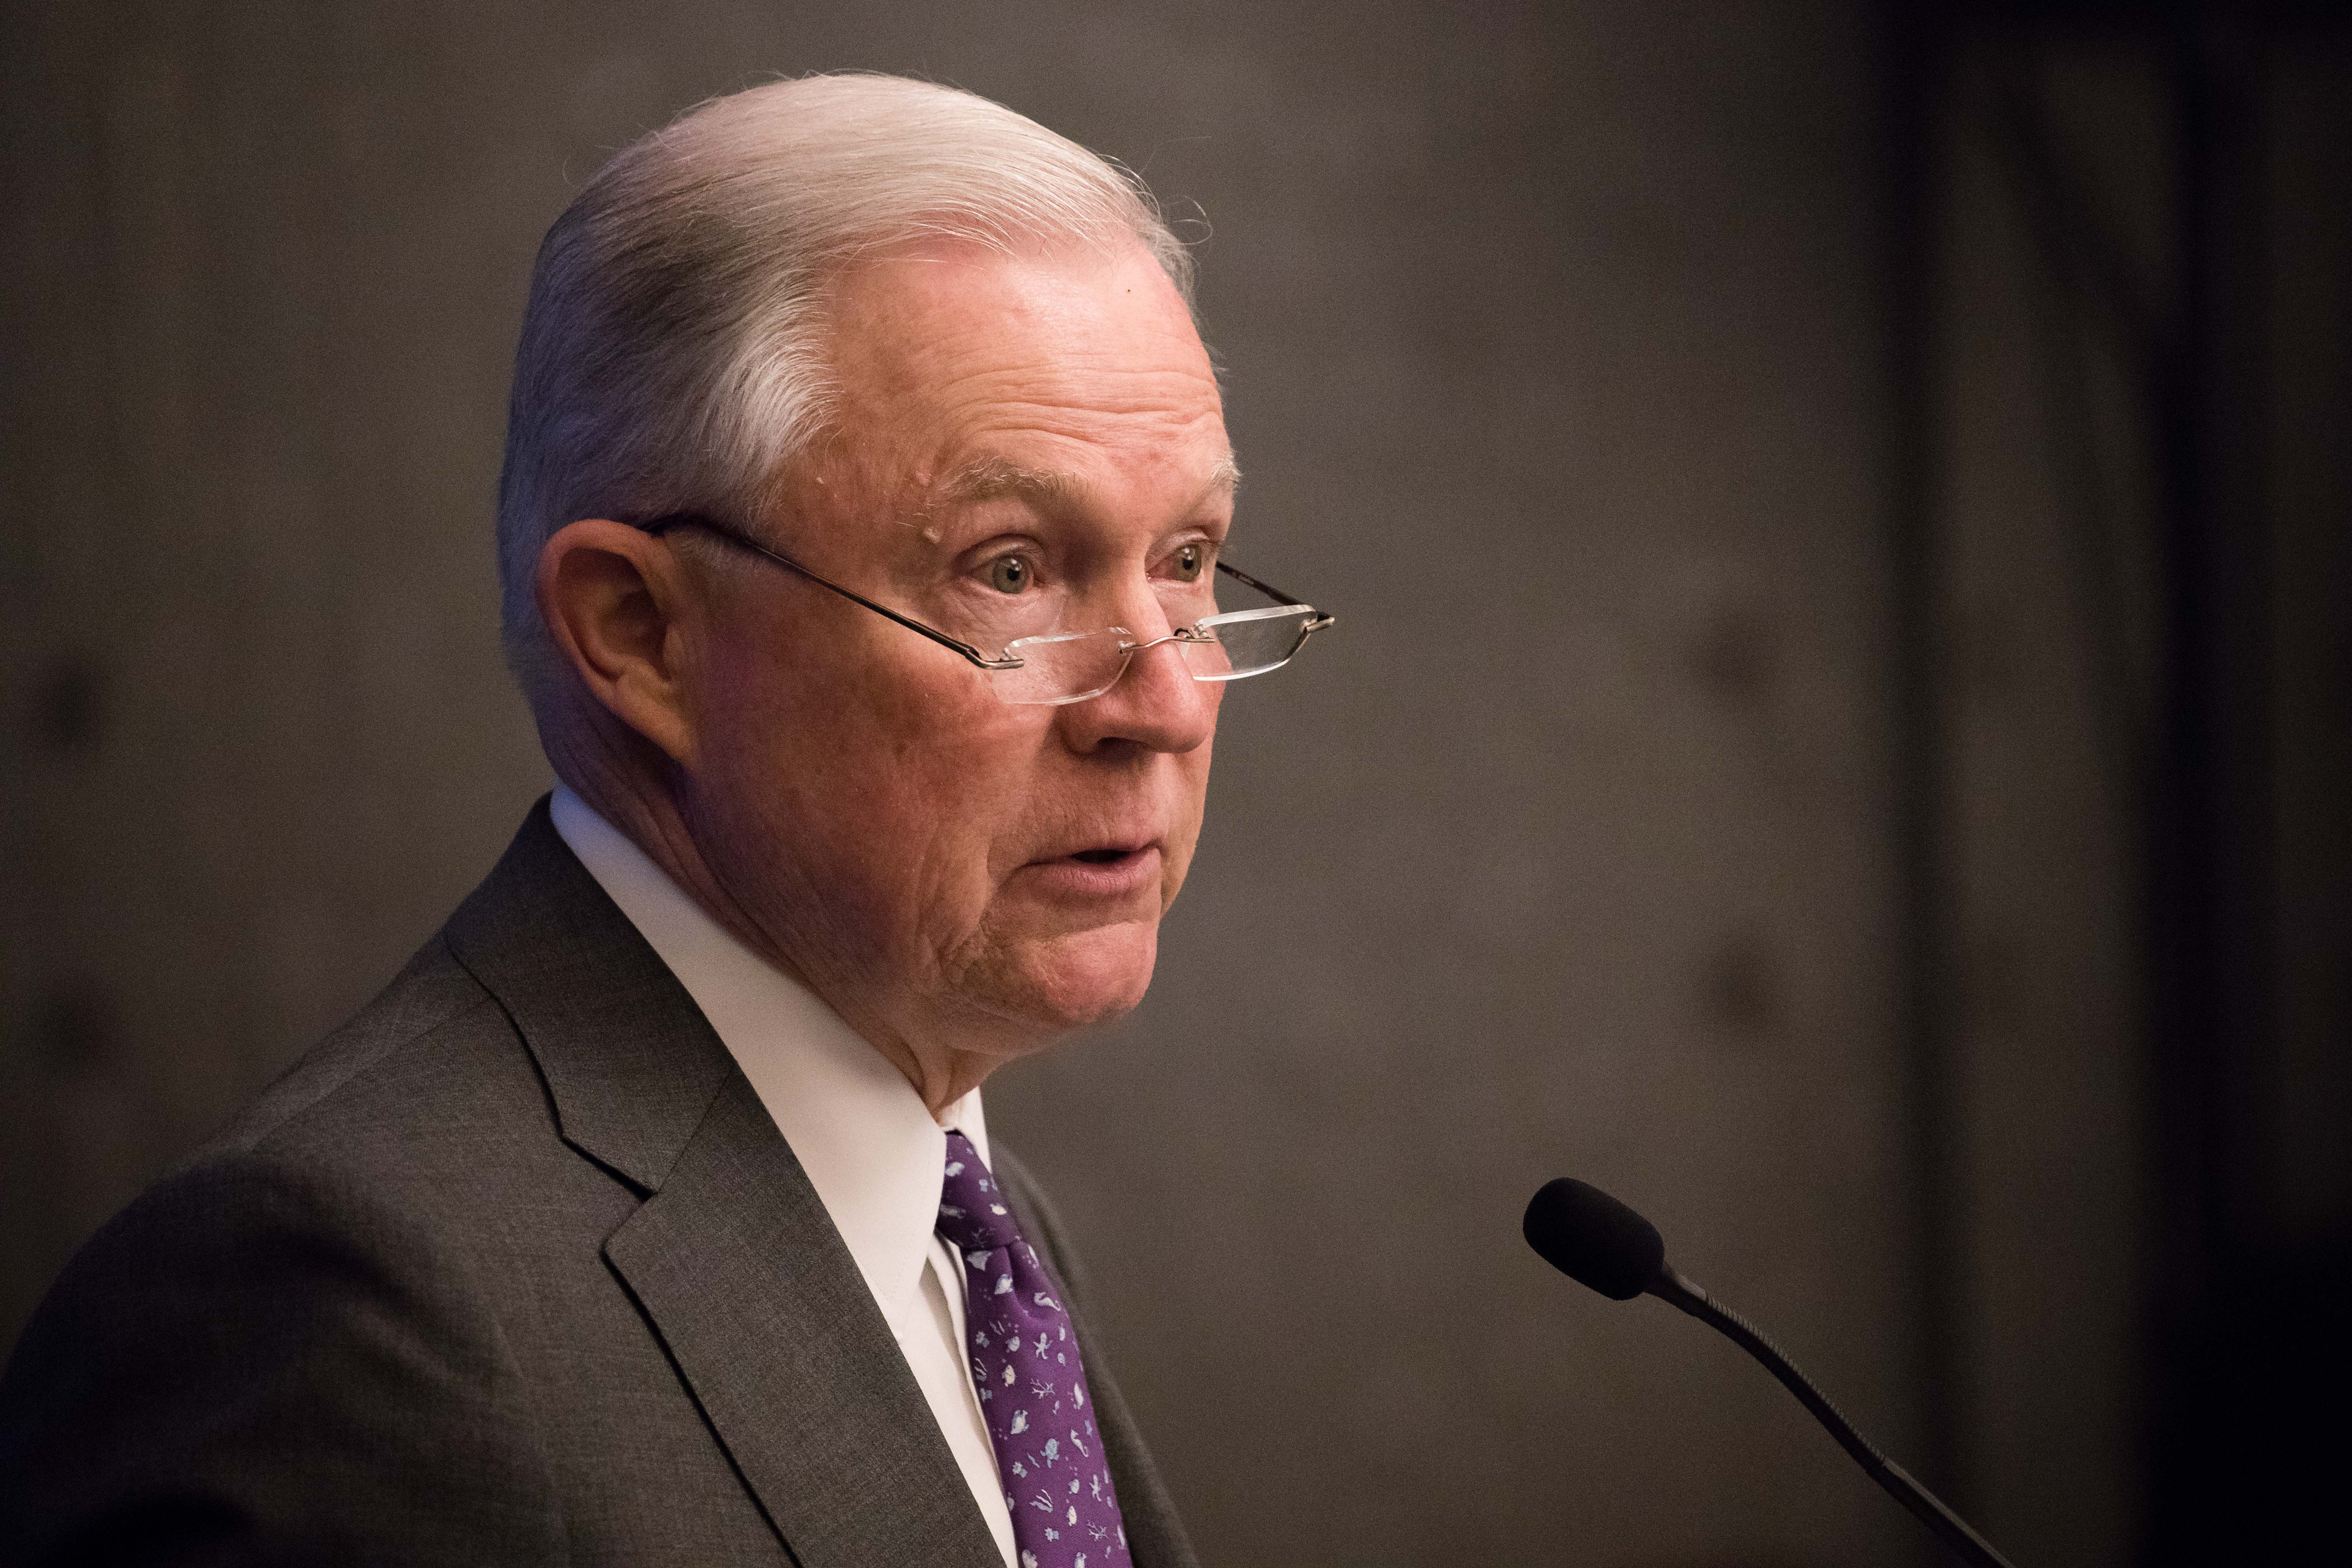 Attorney General Jeff Sessions speaks at the 2018 Opioid Roundtable hosted by the National Sheriffs Association and the Daniel Morgan Graduate School of National Security, in Washington